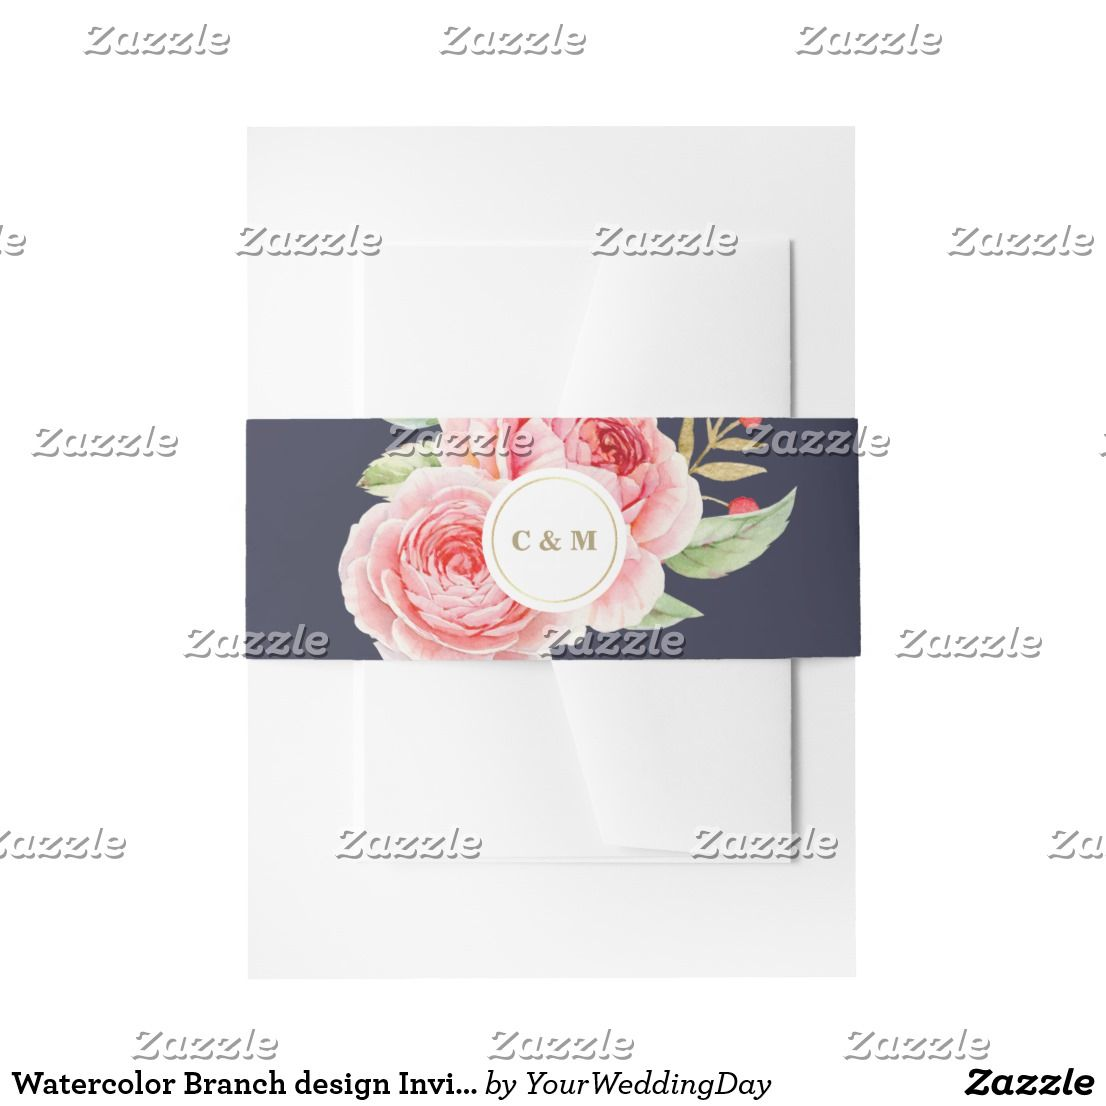 Watercolor branch design invitation belly bands invitation belly